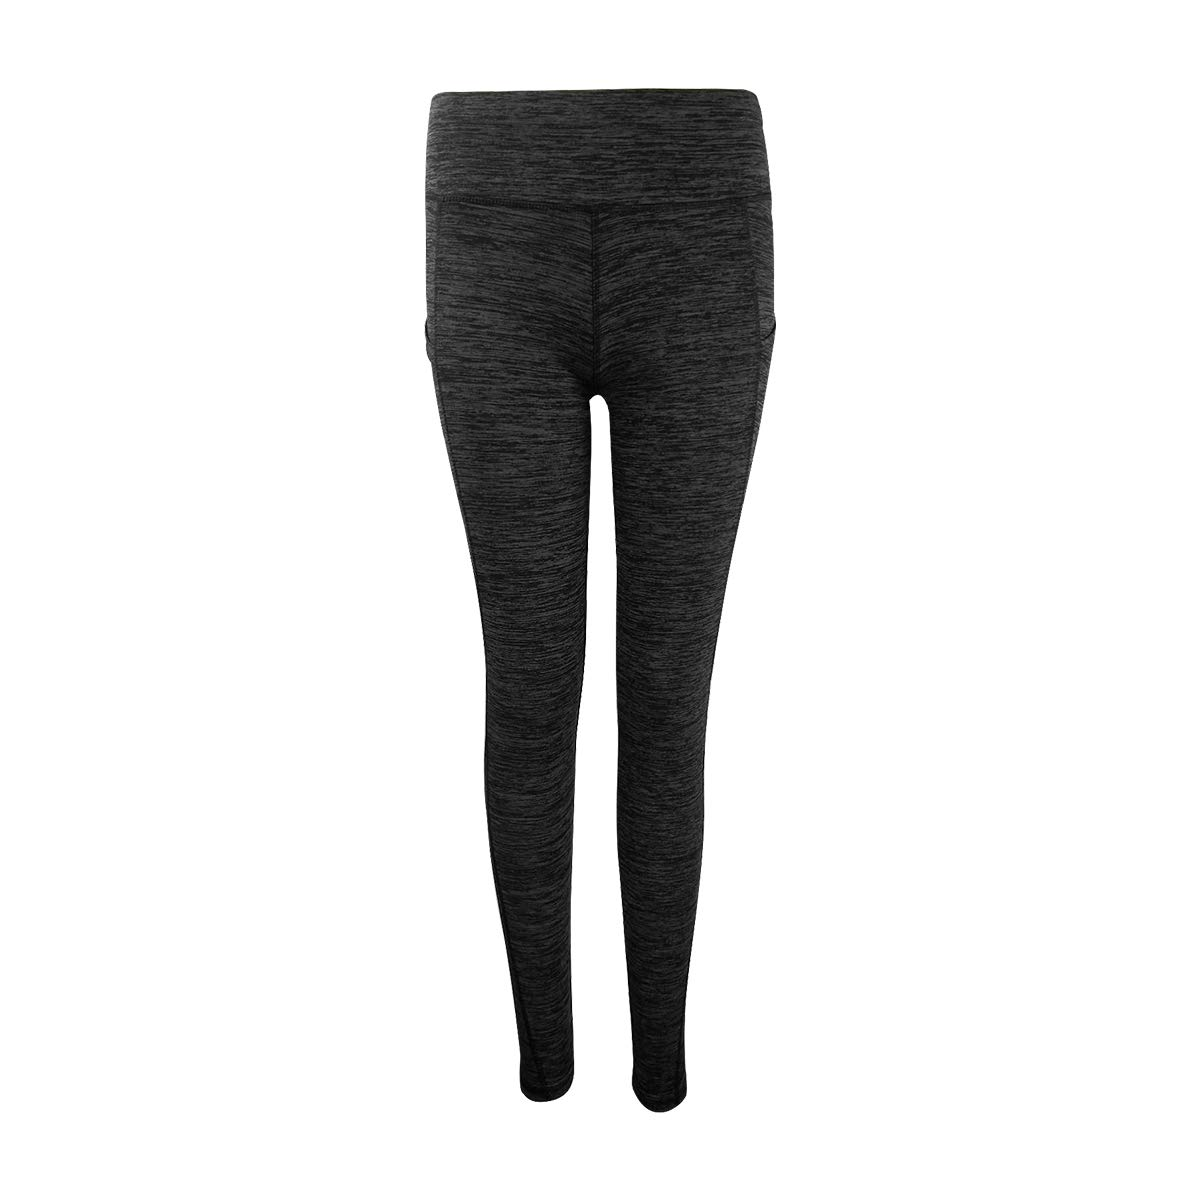 La Dearchuu Yoga Pants for Women High Waist Workout Running Leggings with Pockets Athletic Tights